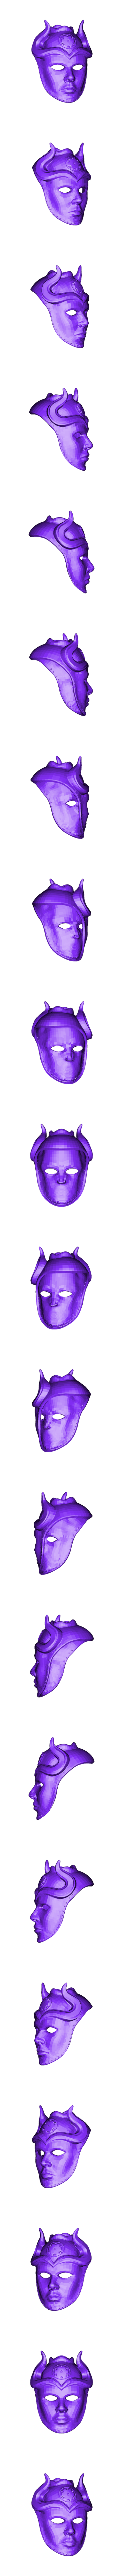 Sons_of_the_Harpy_Mask_thick.obj Download free OBJ file Sons of the Harpy Mask • 3D printing model, TomasLA